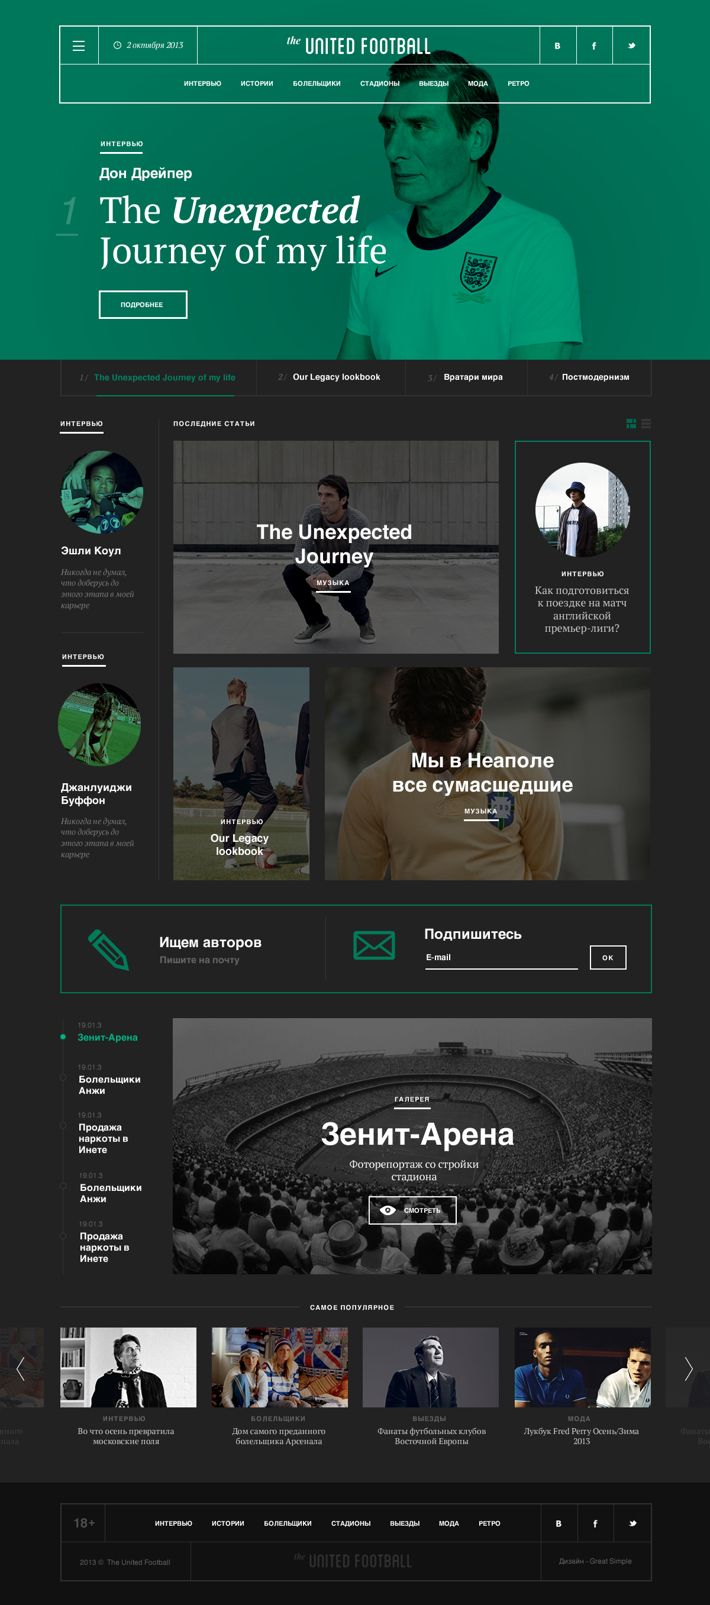 The United Football by Alexey Rybin Website design layout. Inspirational UX/UI design sample. Visit us at: www.sodapopmedia.com #WebDesign #UX #UI #WebPageLayout #DigitalDesign #Web #Website #Design #Layout